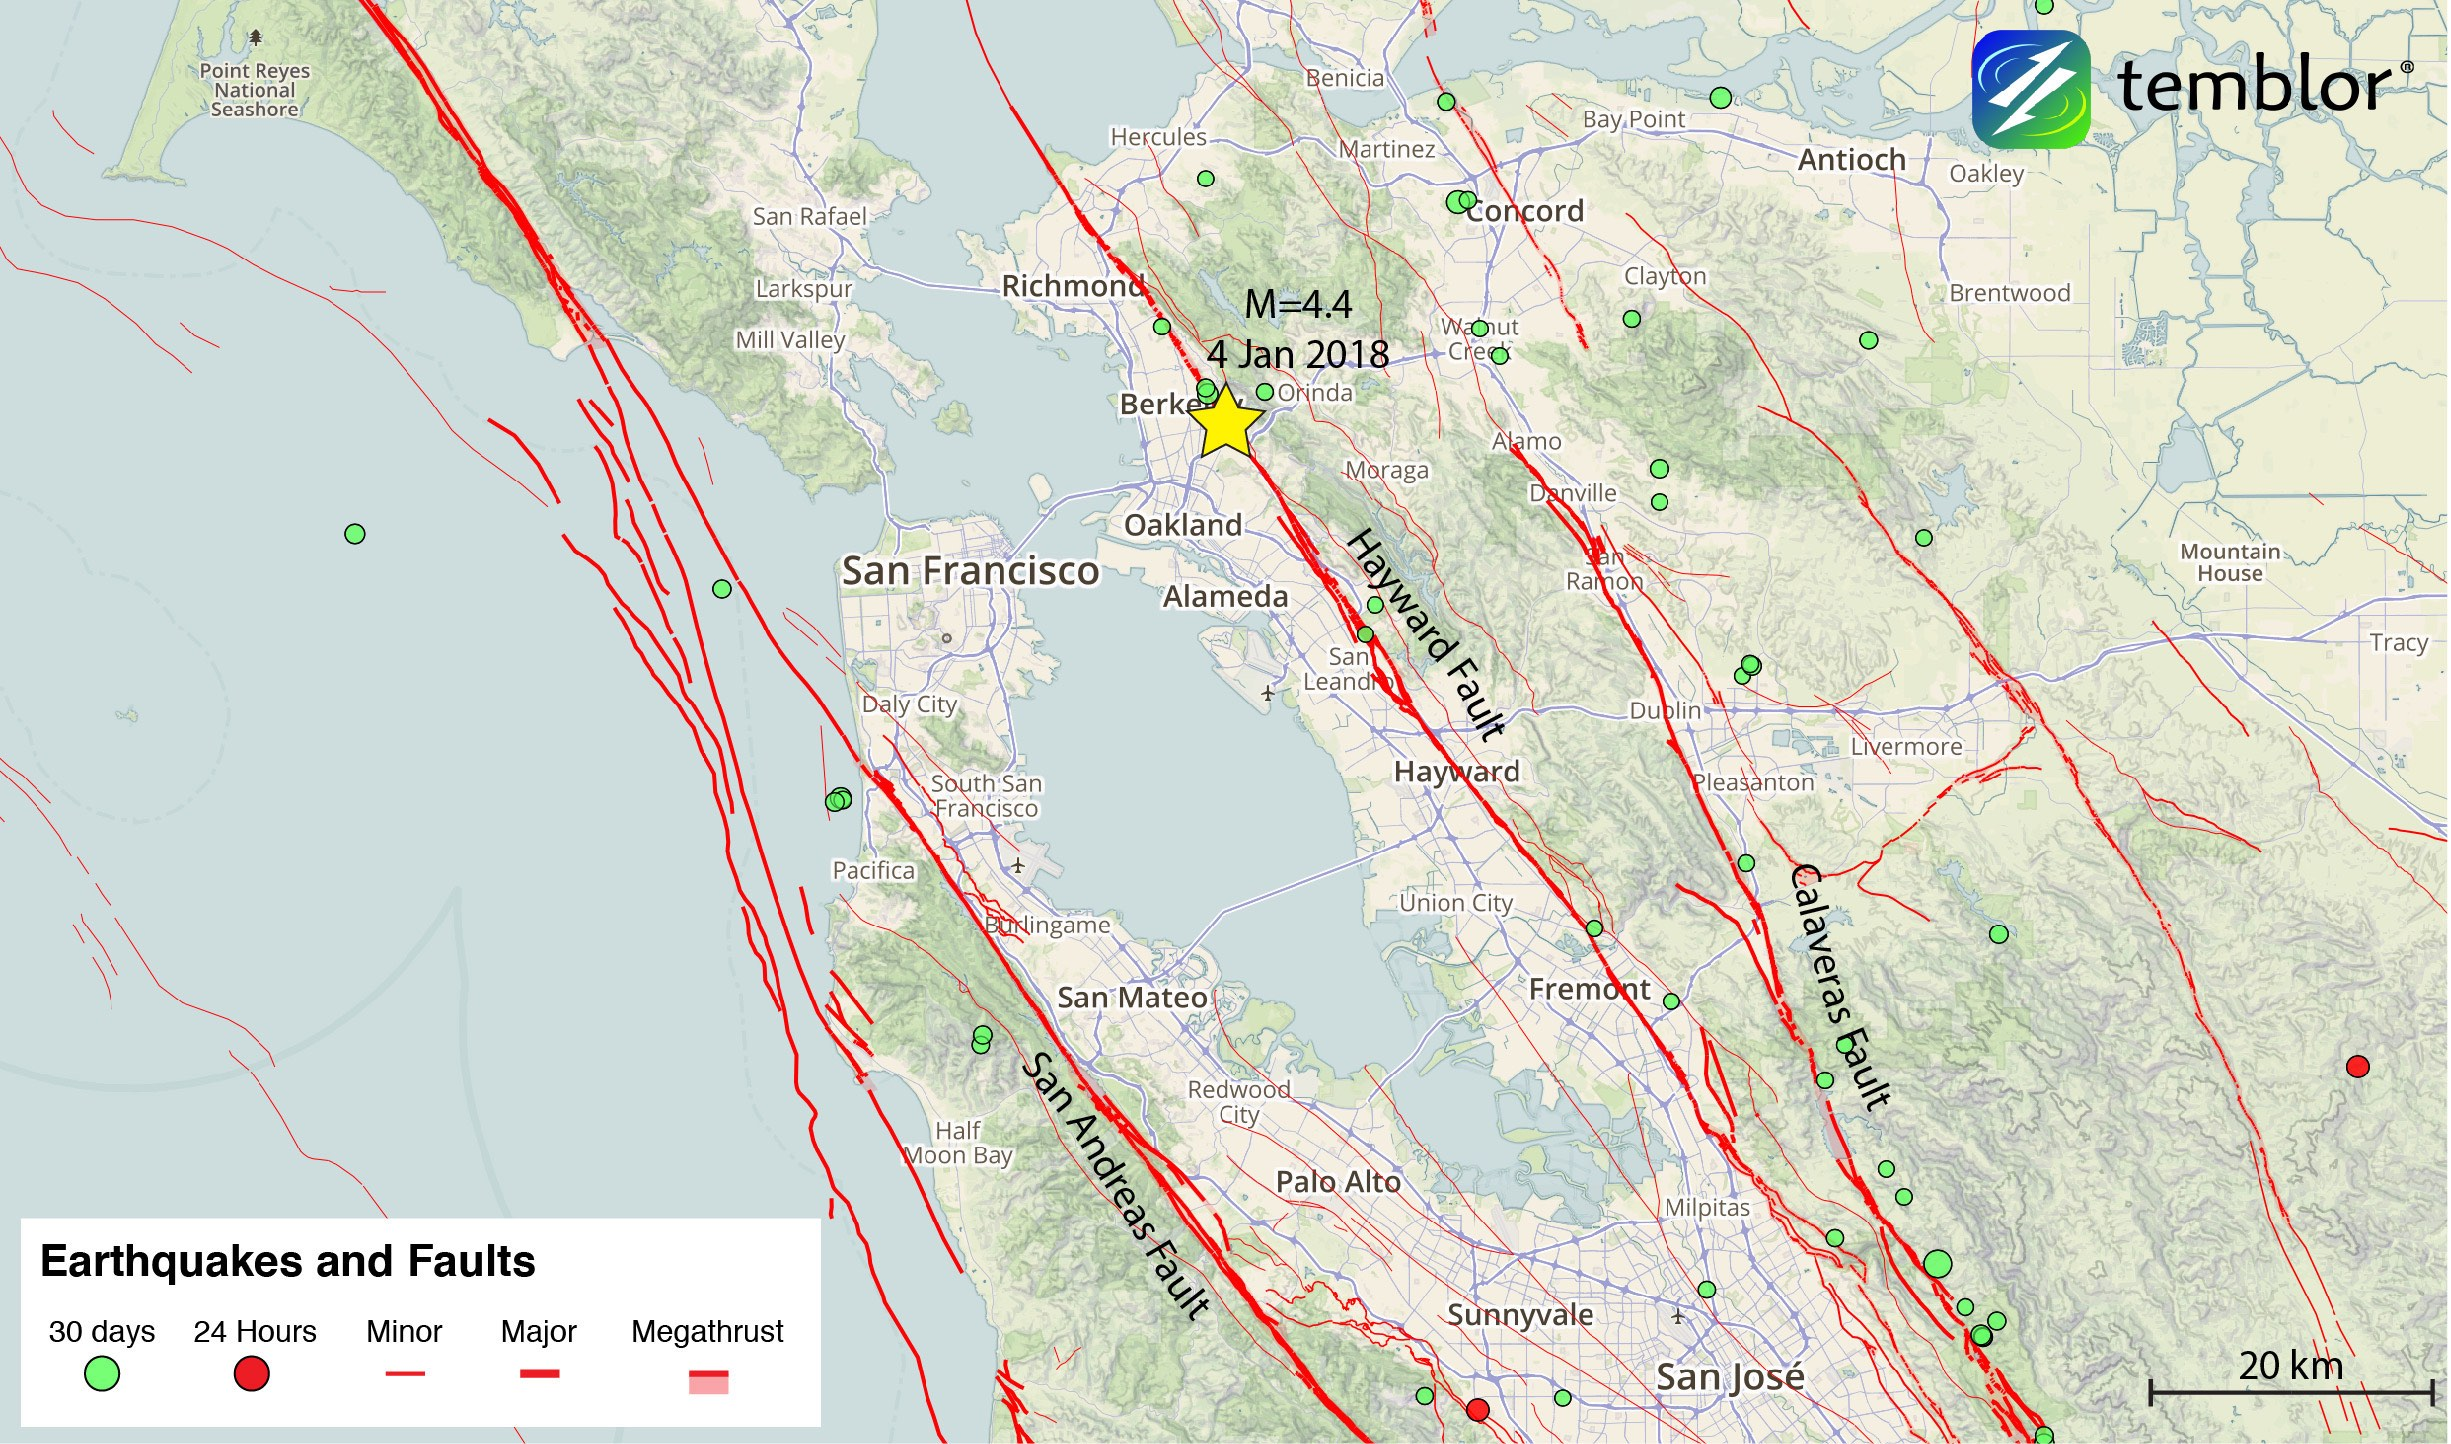 This Temblor map shows the location of last night's M=4.4 earthquake beneath Berkeley. Despite its moderate magnitude, shaking was felt over the entire Bay Area.